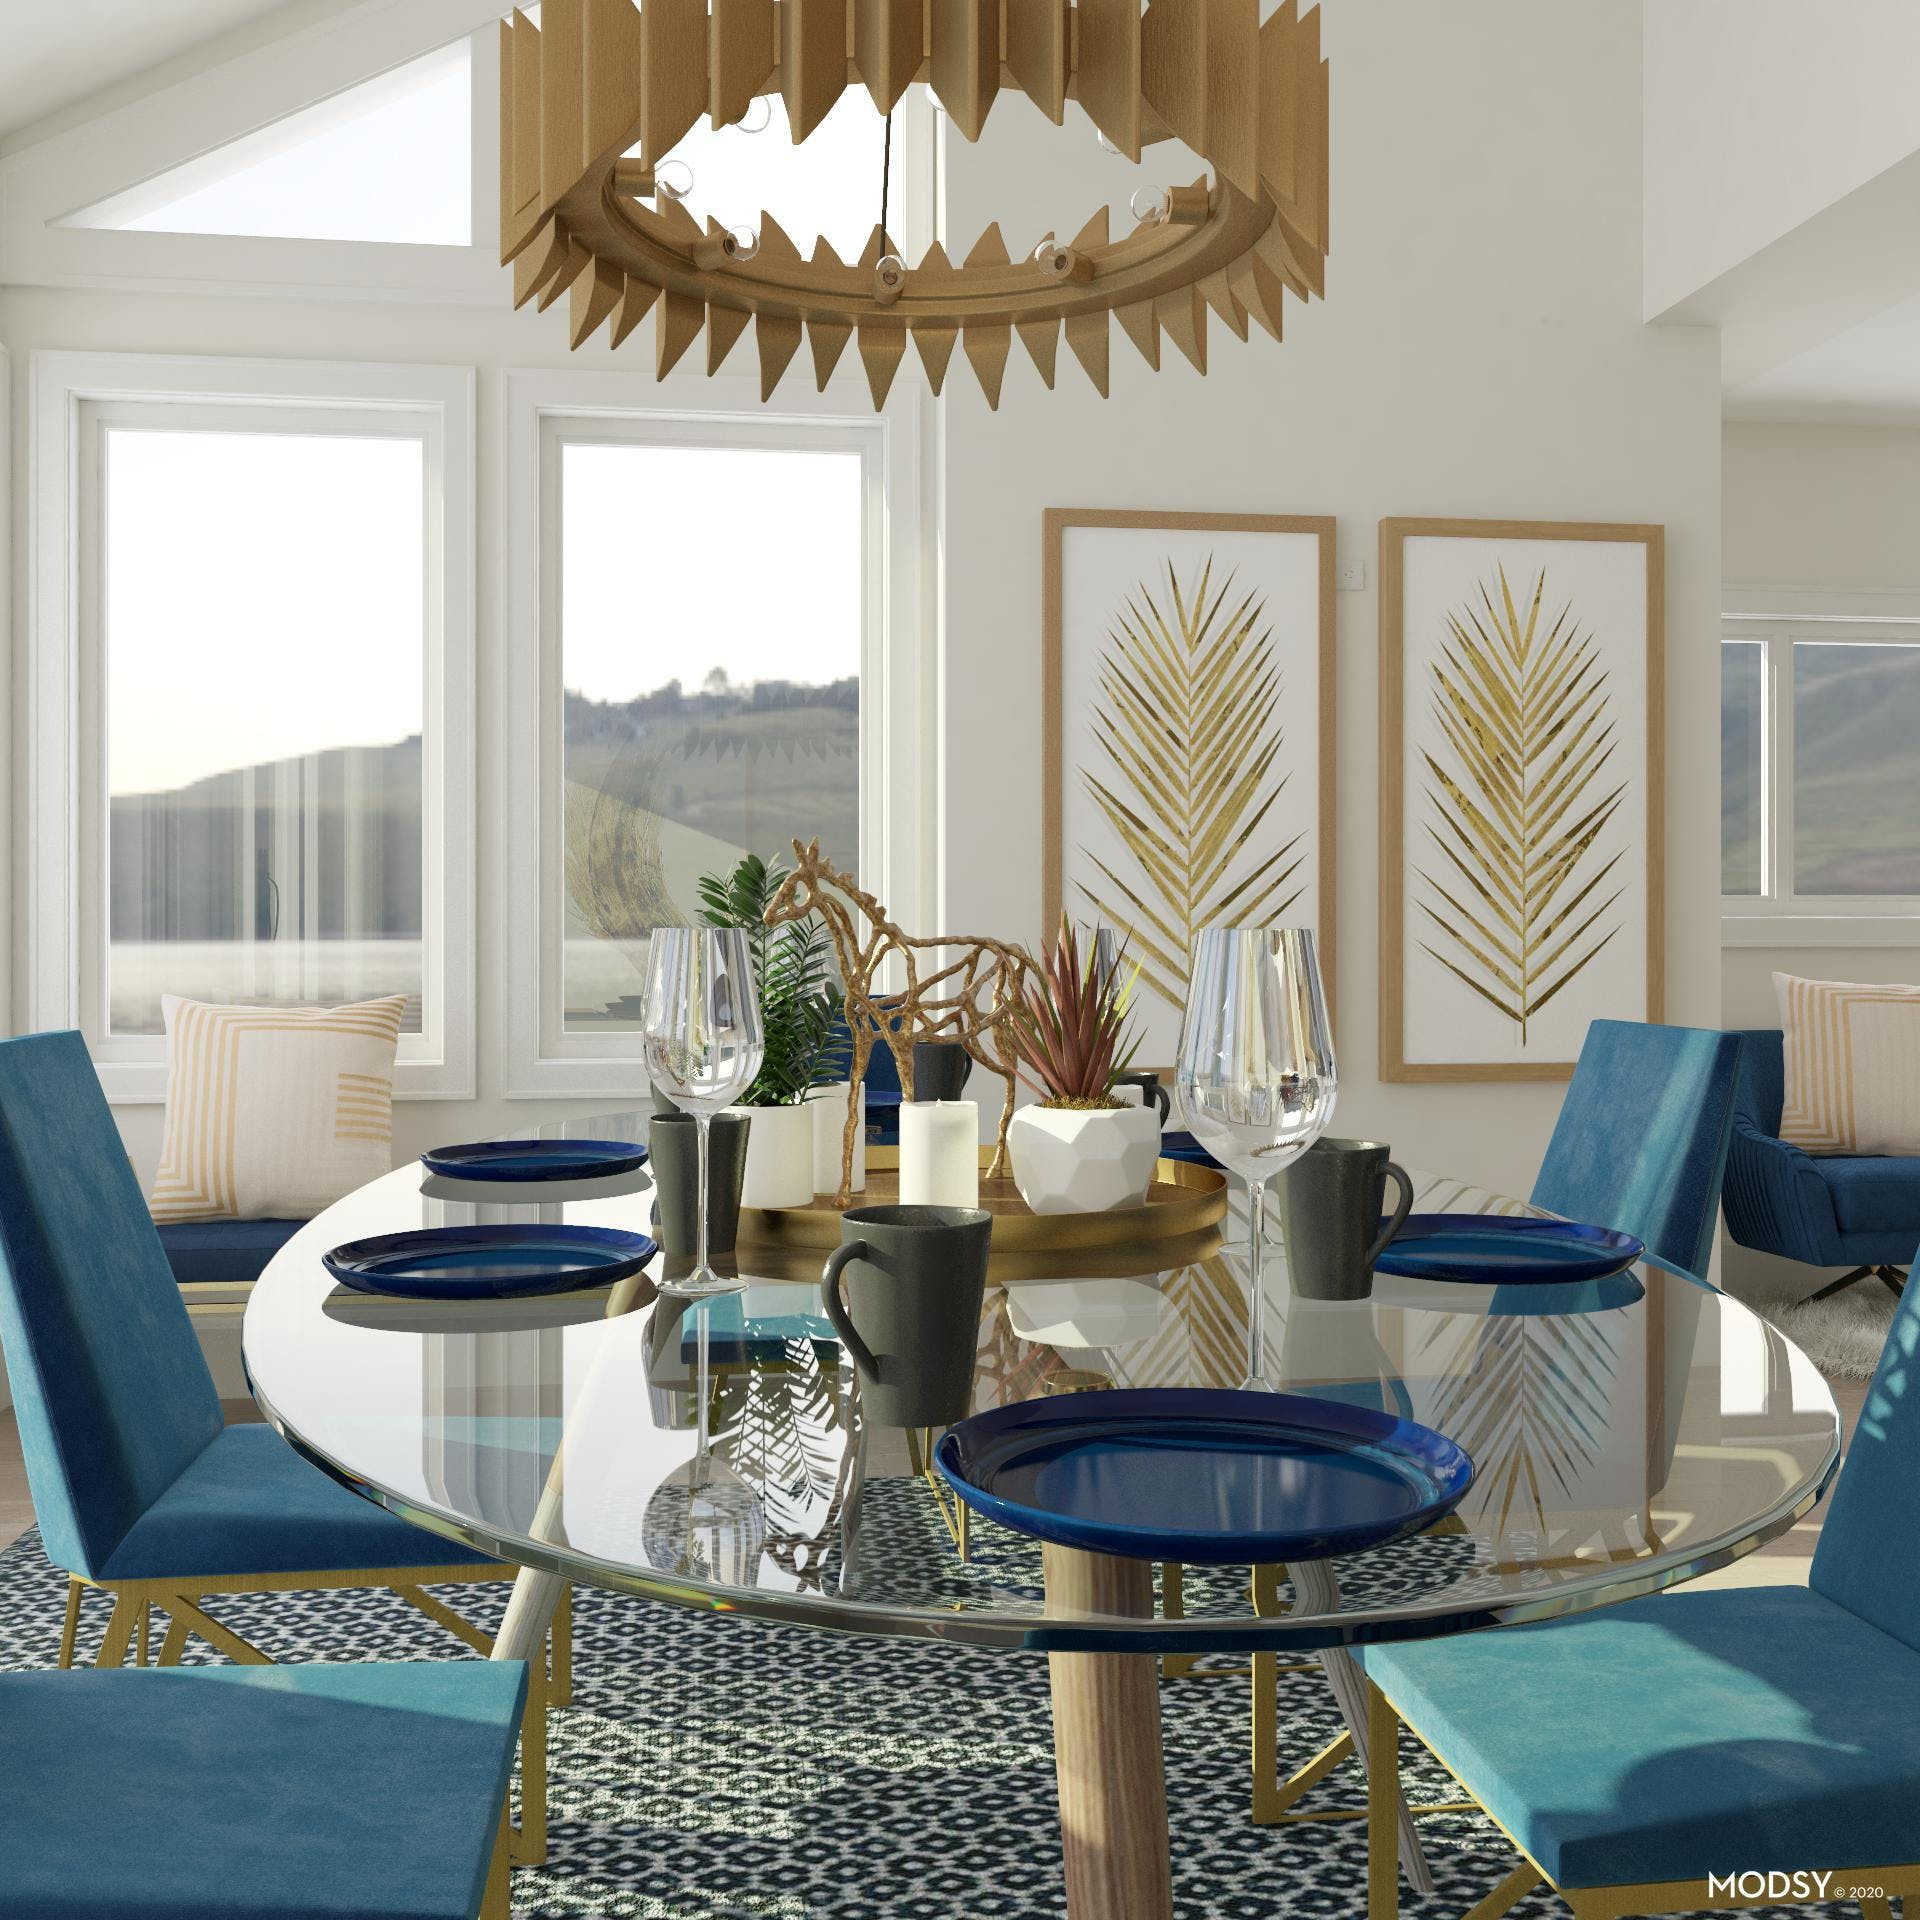 Centerpieces and Art in Glam Dining Room